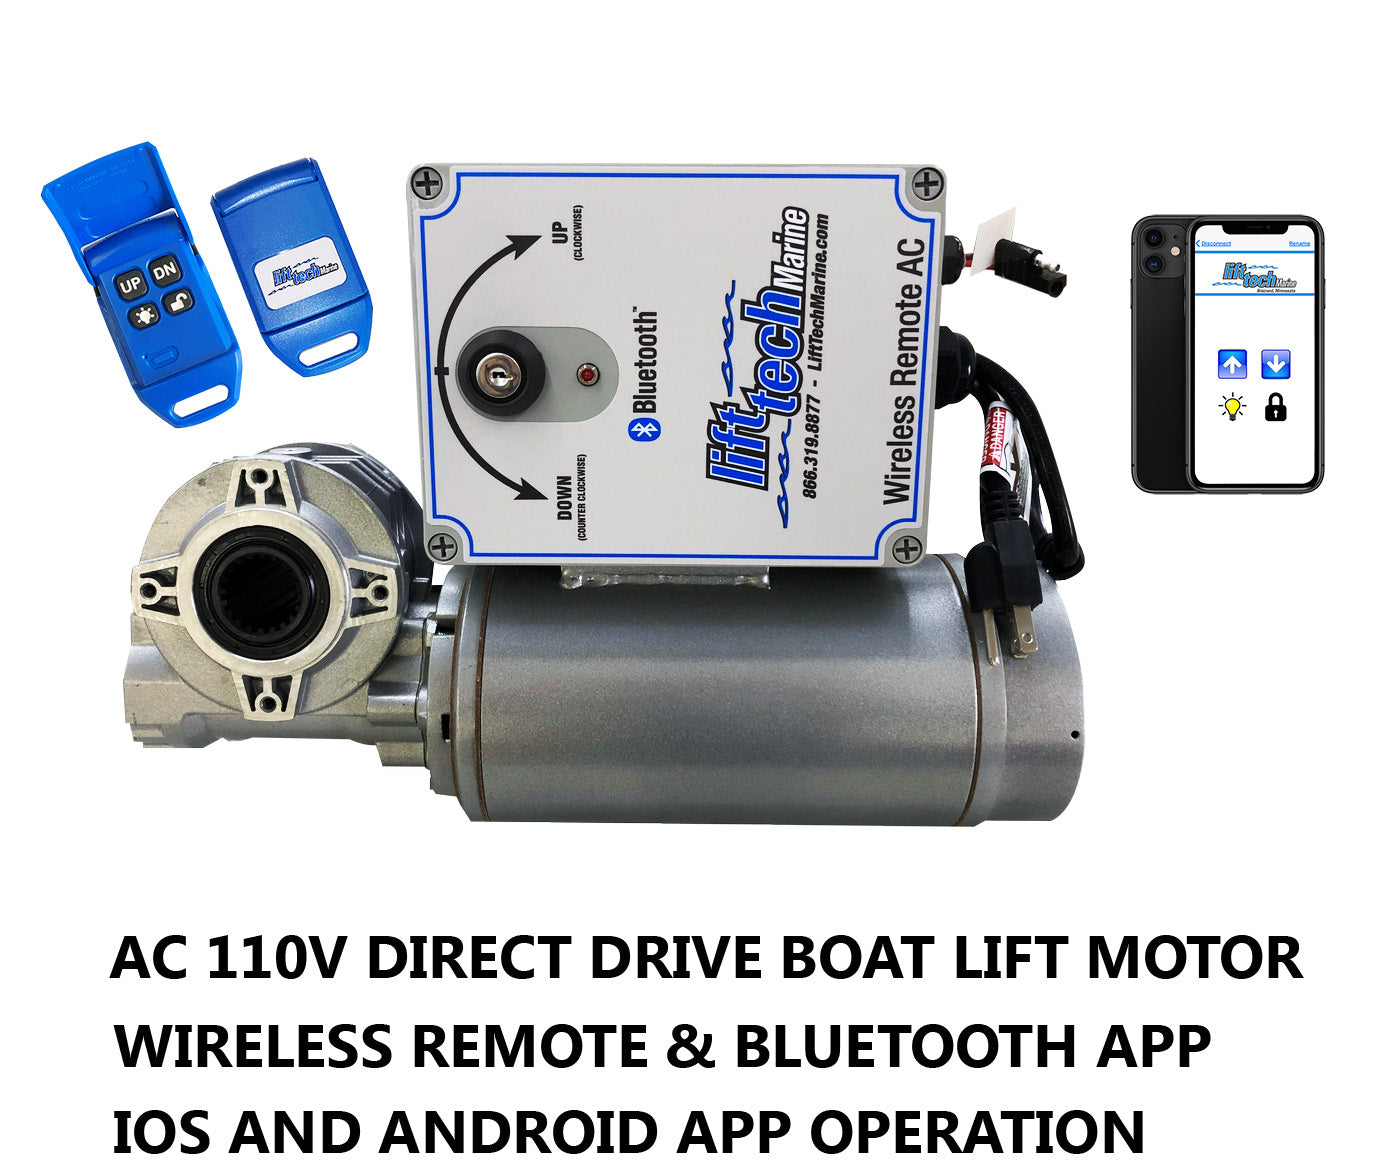 Boat Lift Motor AC 110V Direct Drive (Wireless Remote & Bluetooth Mobile App) - Lift Marine